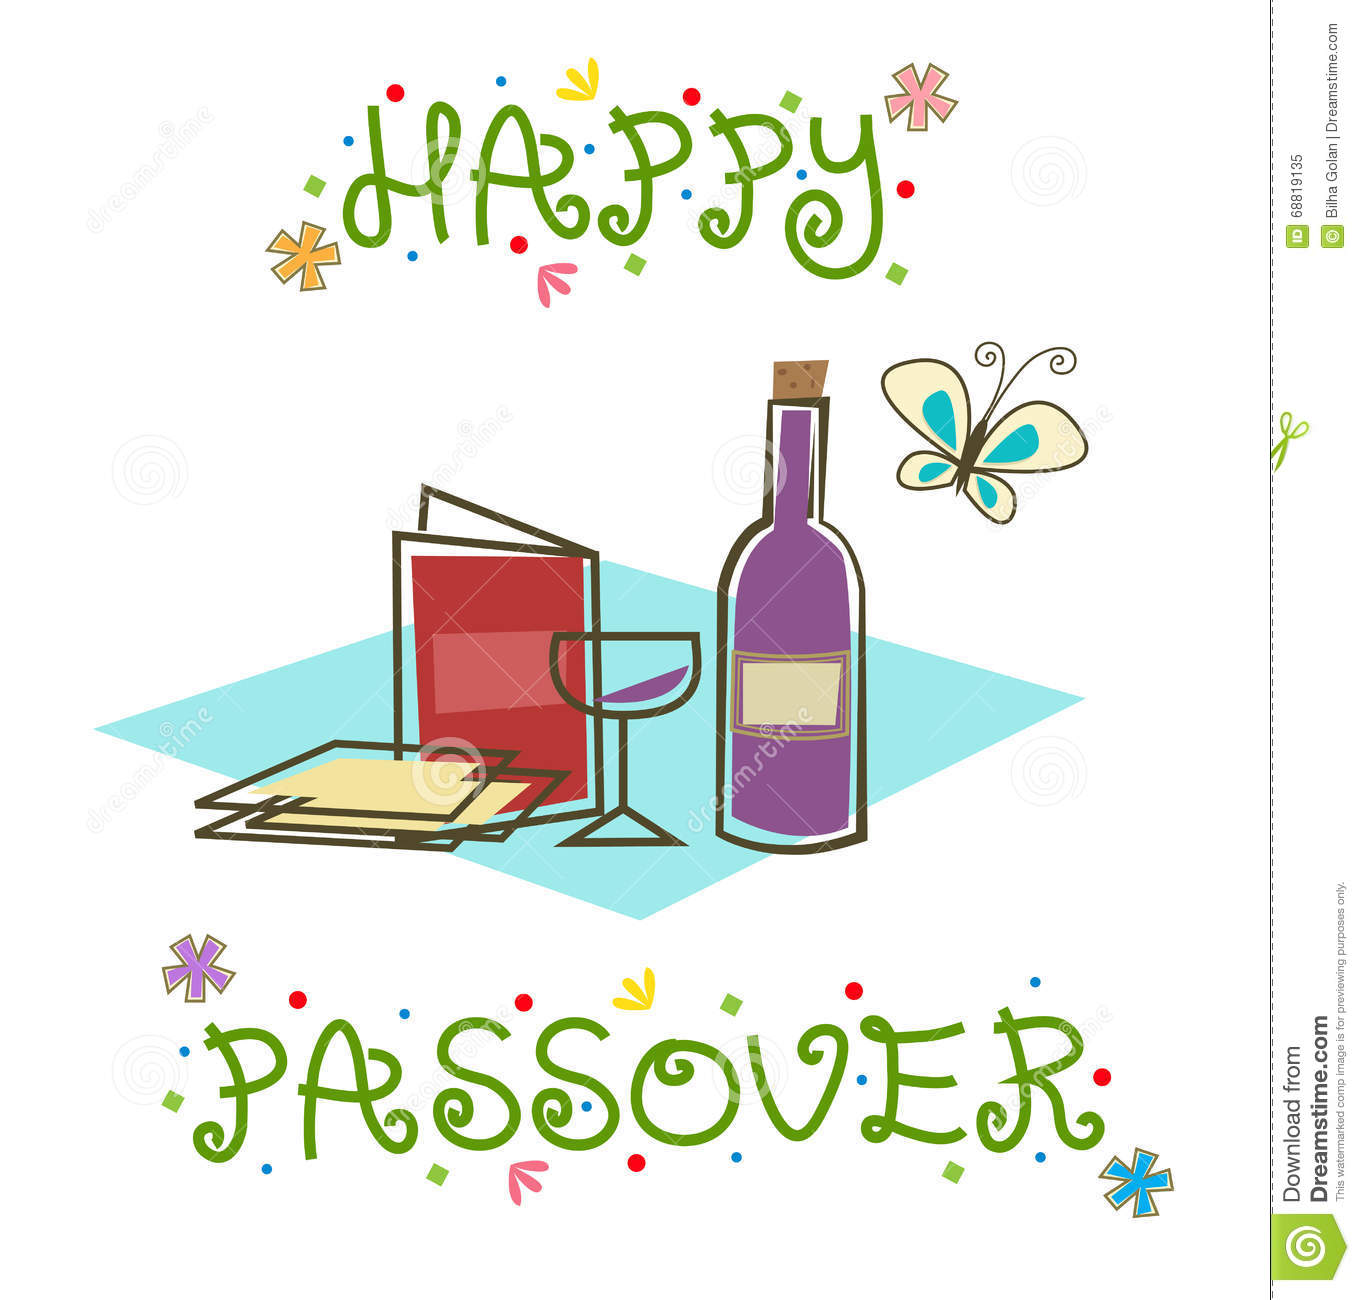 Happy passover sign stock vector illustration of greetings 68819135 download happy passover sign stock vector illustration of greetings 68819135 m4hsunfo